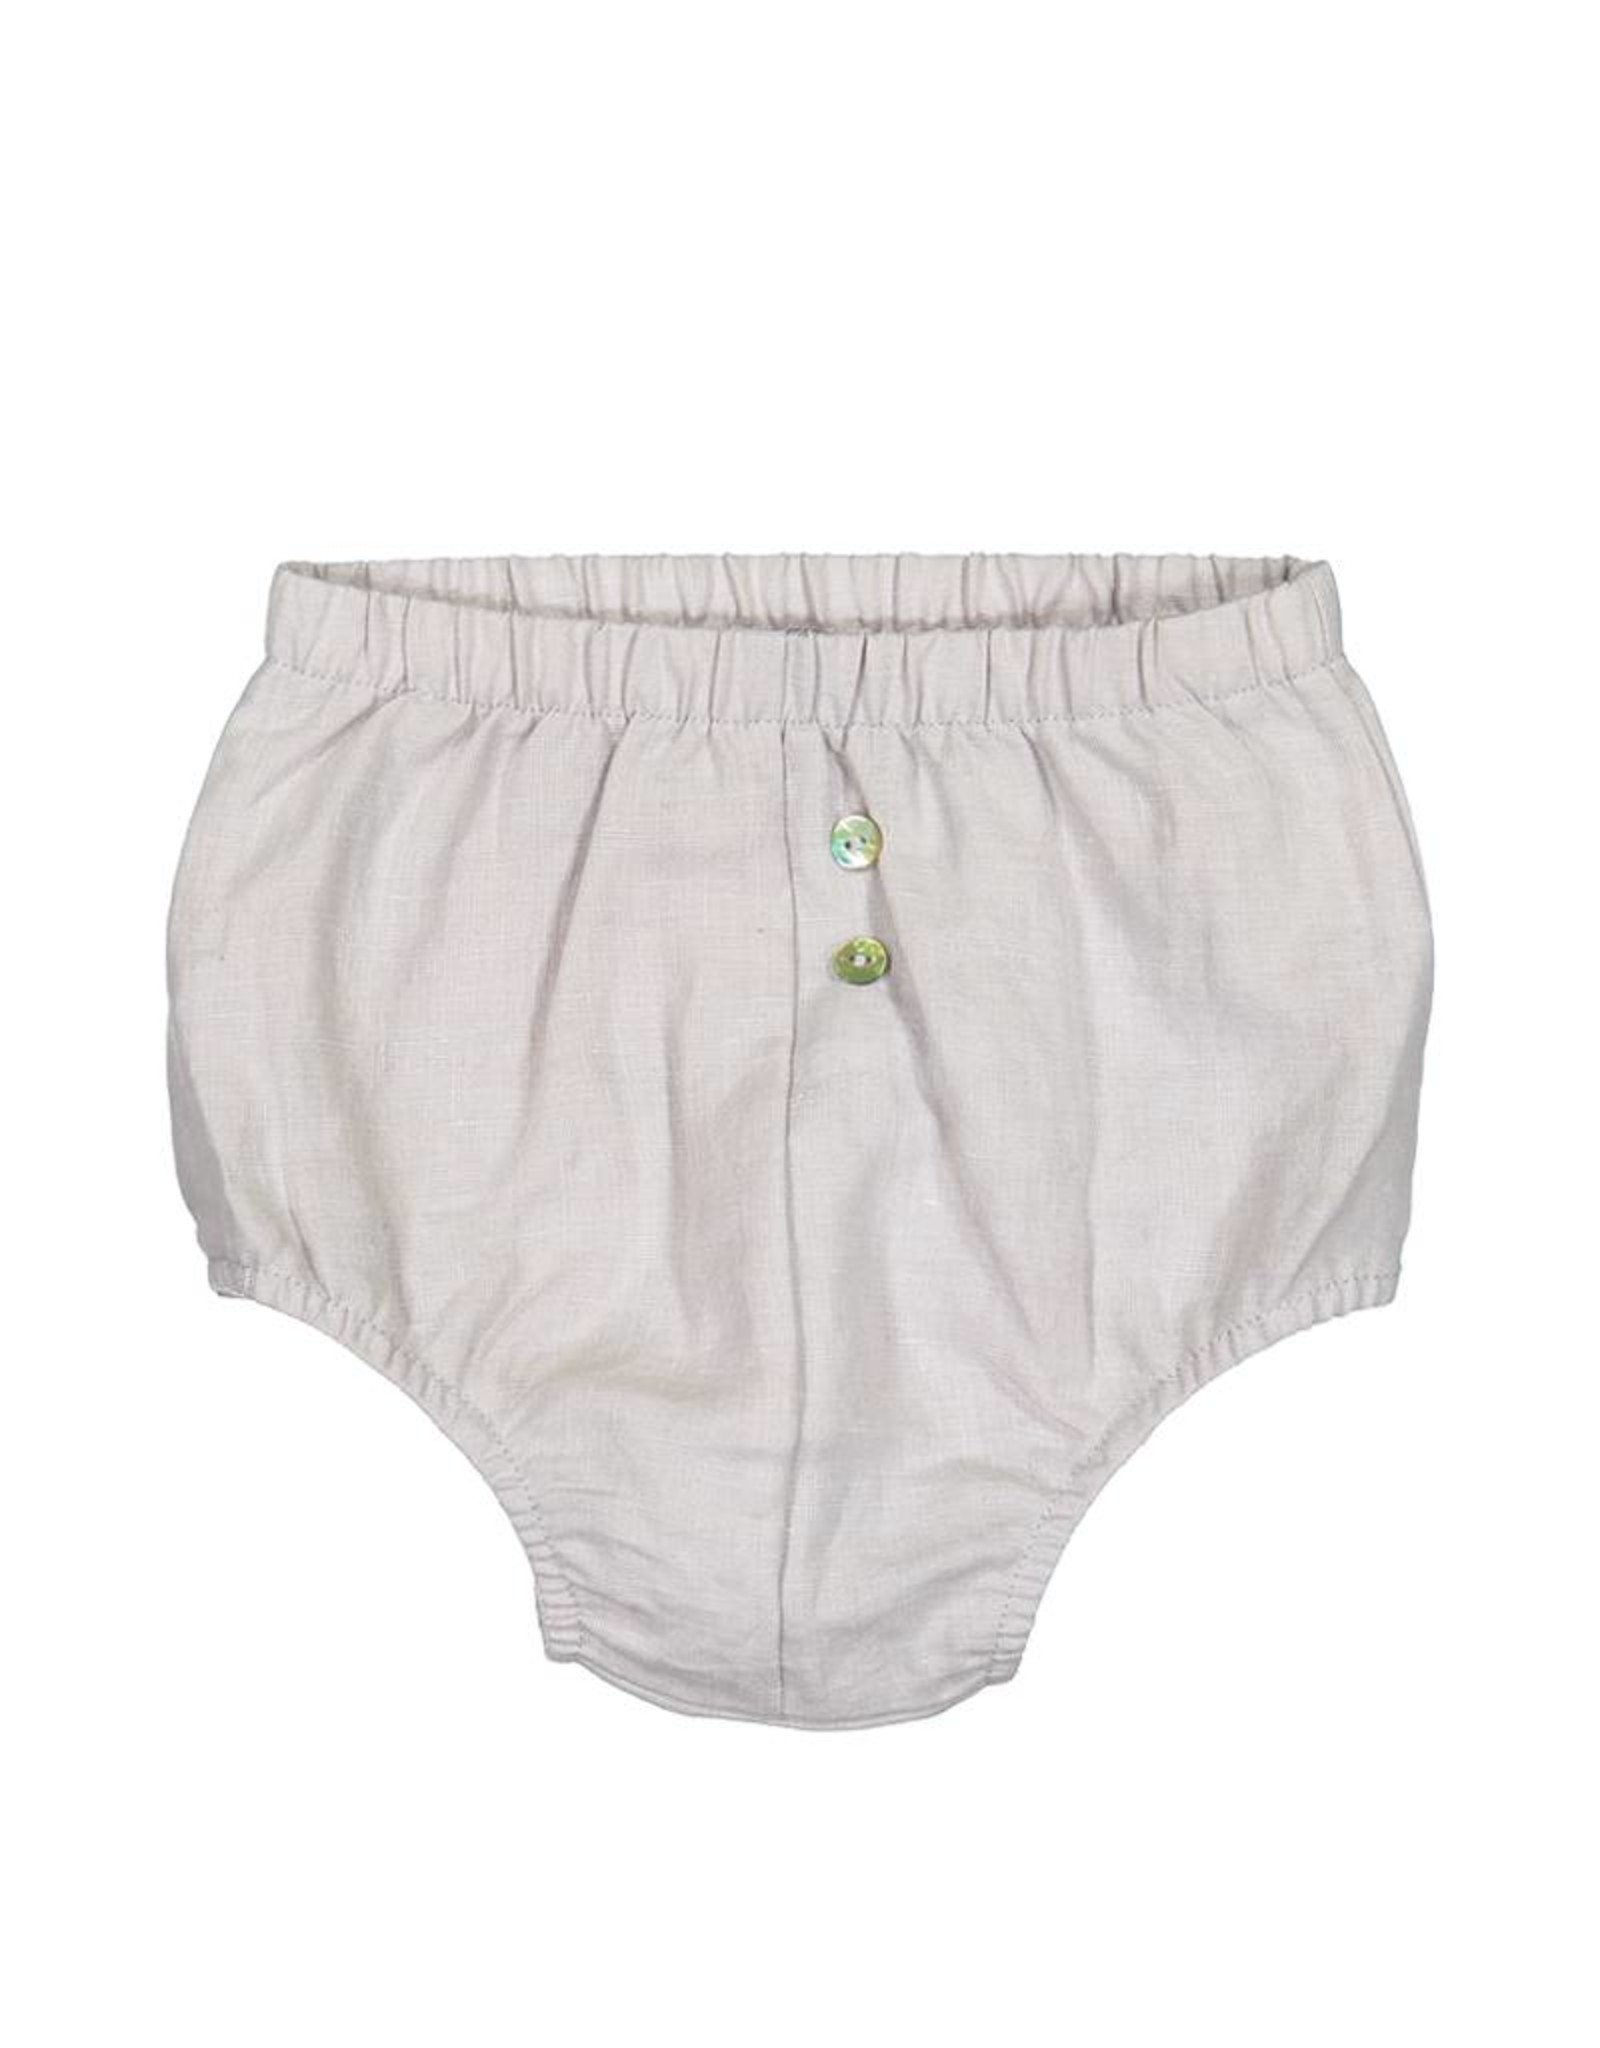 Analogie Analogie SS19 Linen Bloomers